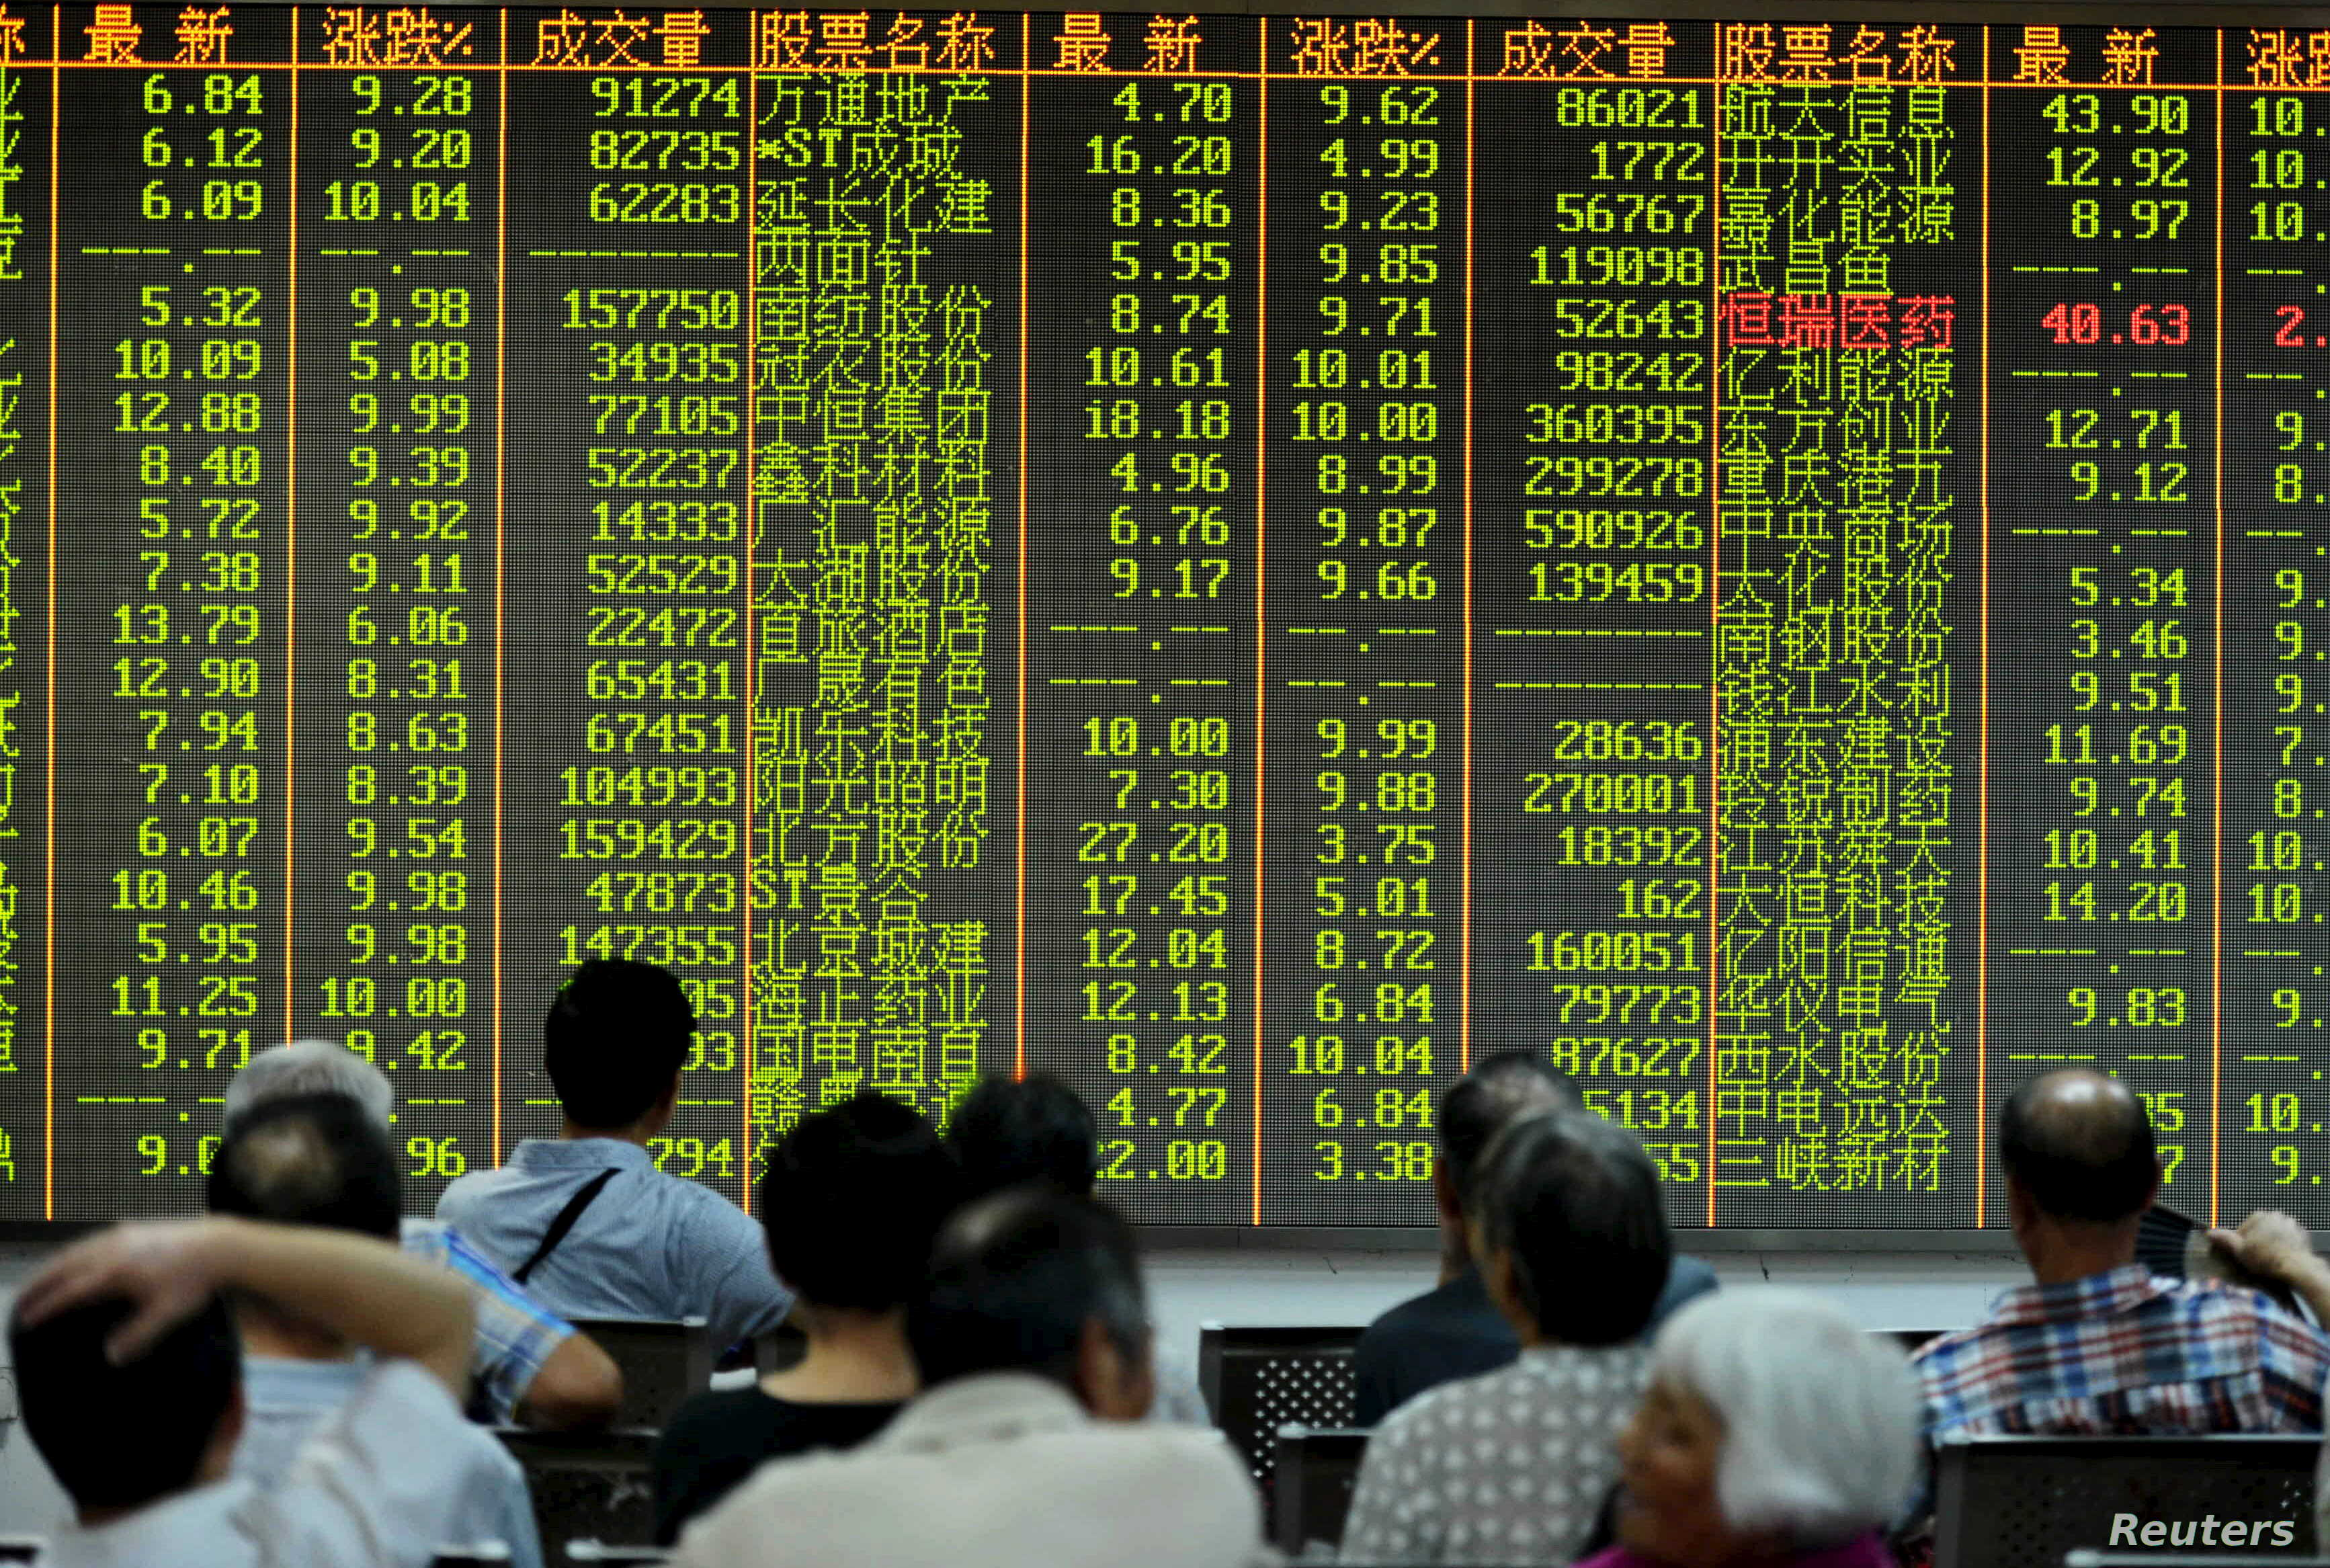 Investors look at stock information on an electronic board at a brokerage house in Hangzhou, Zhejiang province, Aug. 25, 2015.